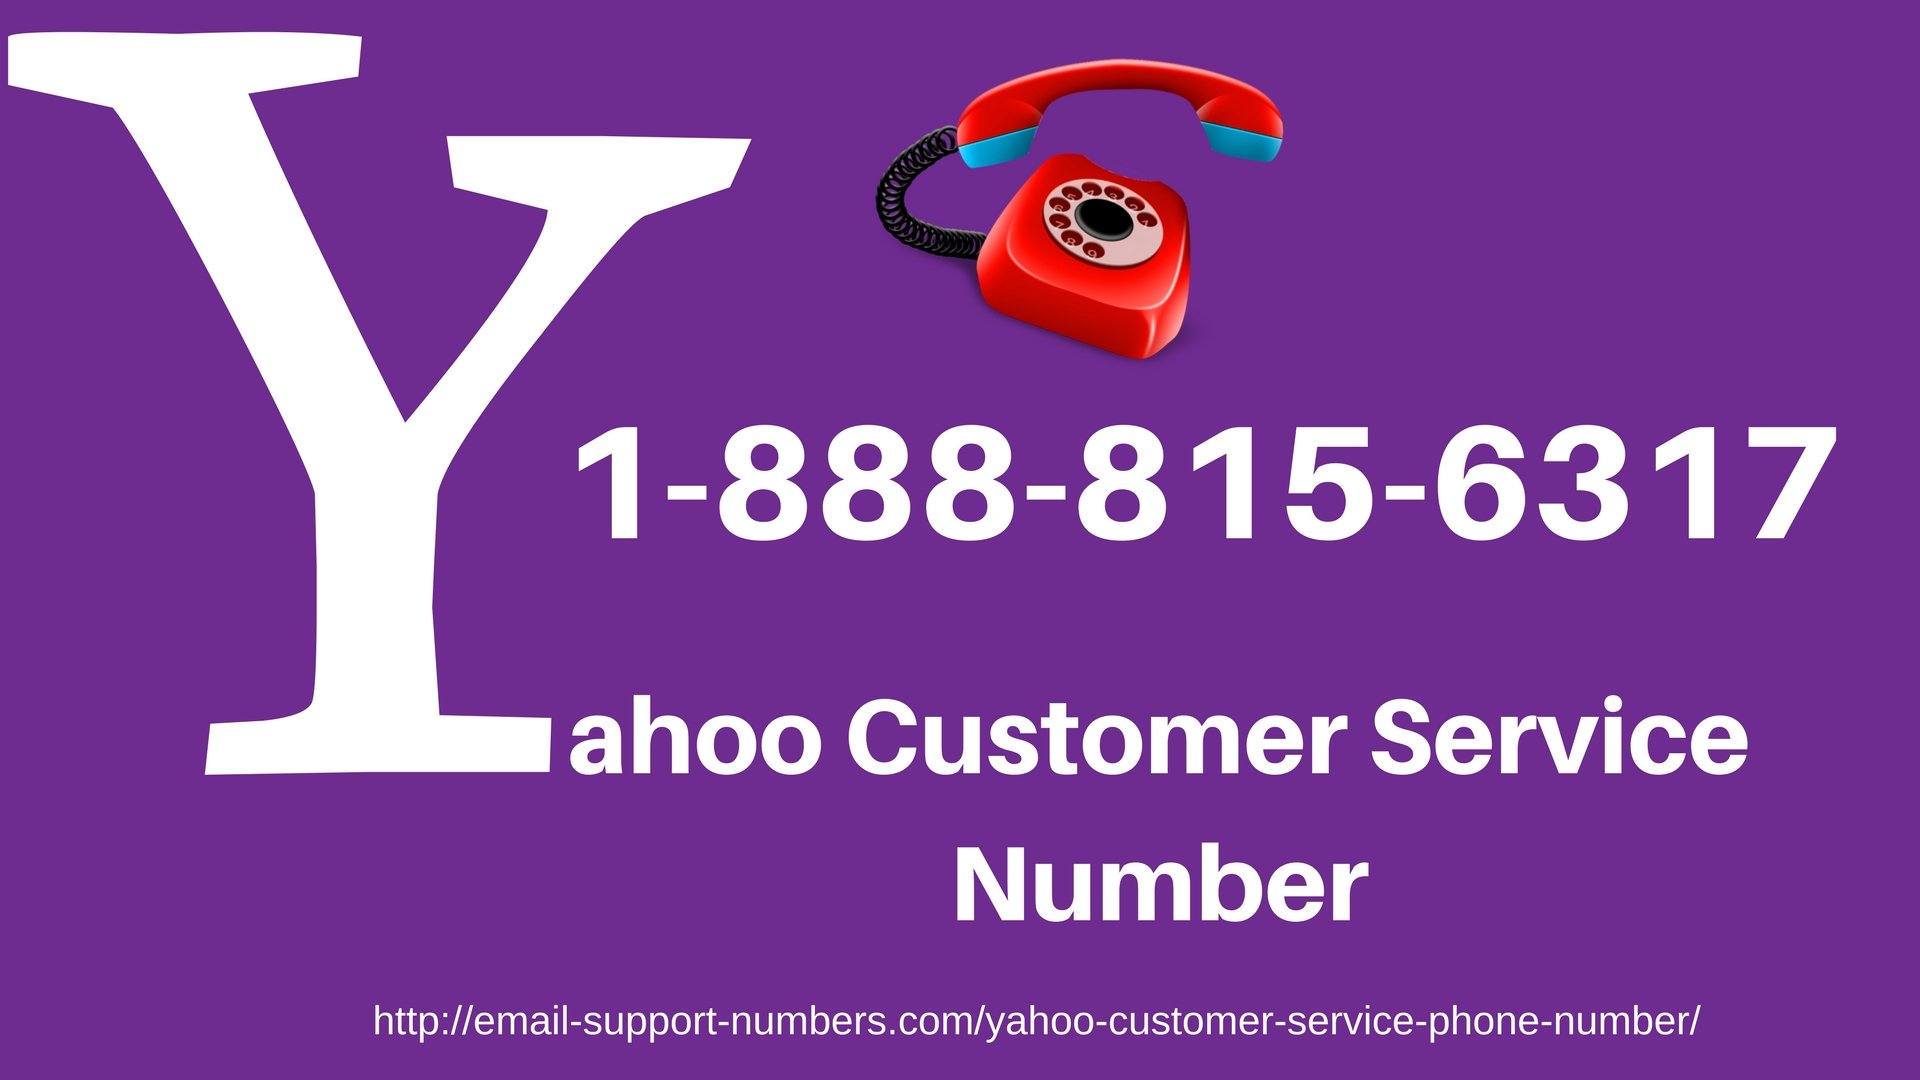 contact Yahoo support number